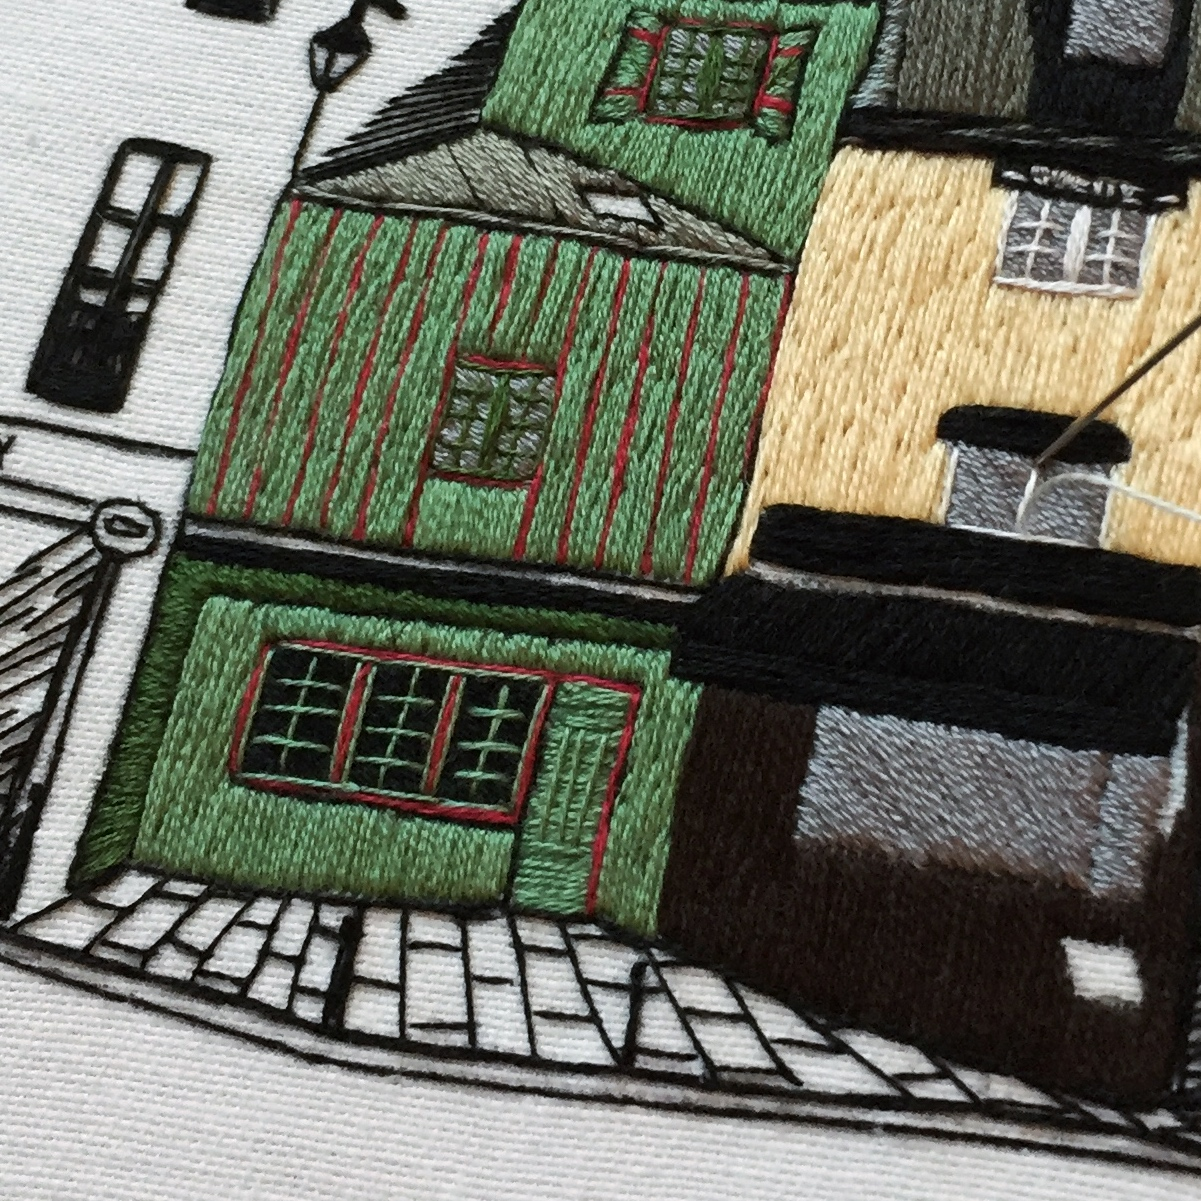 How to embroider window frames